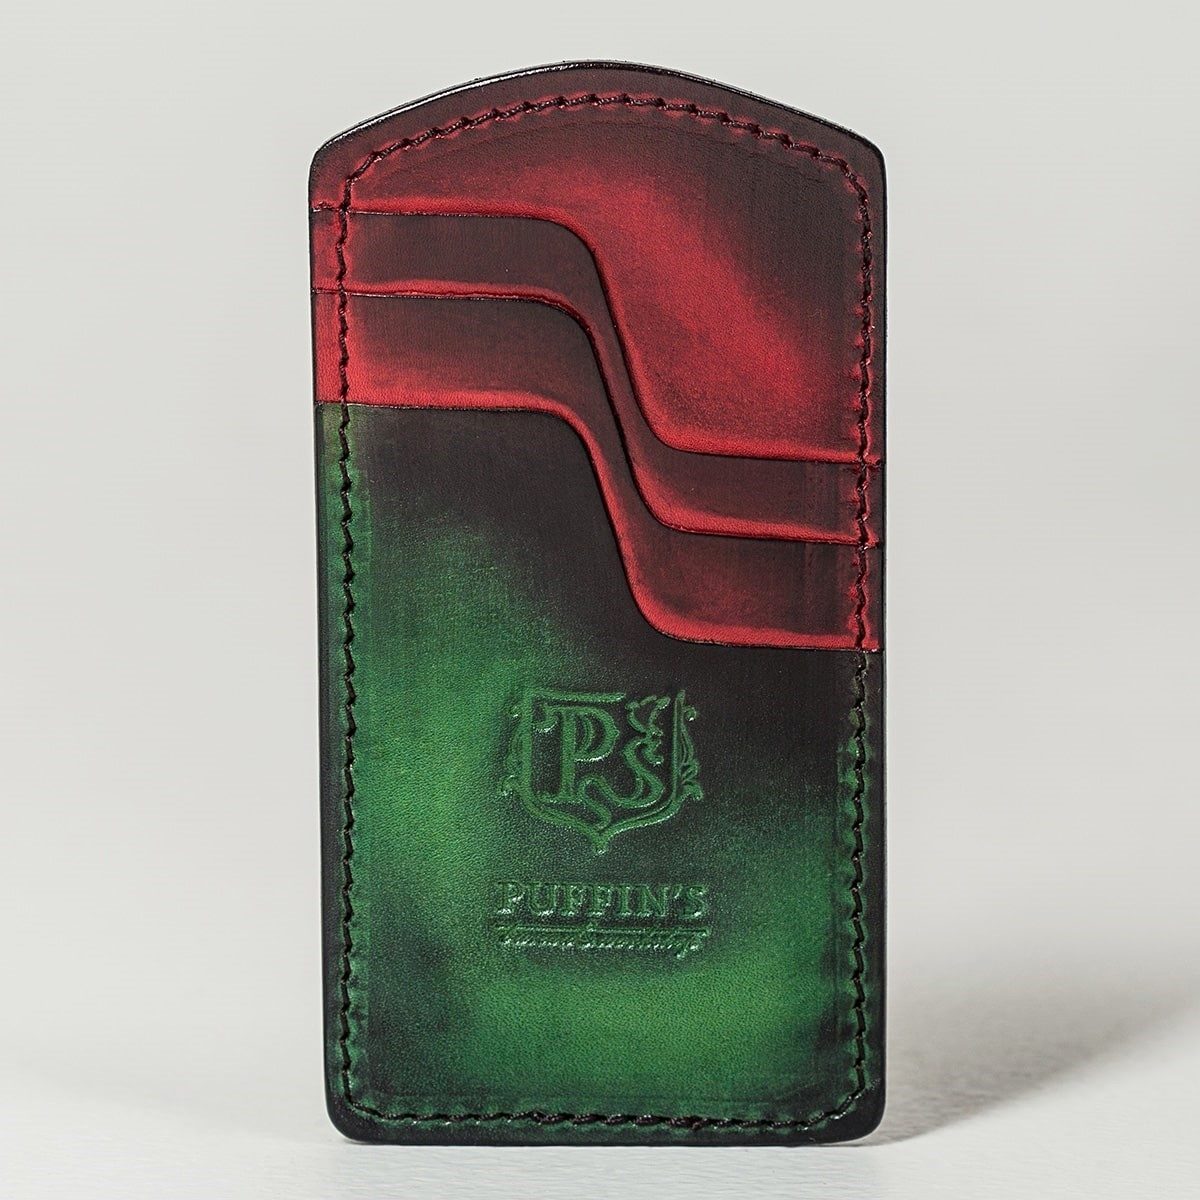 Cardholder TOWER grassy green & red currant